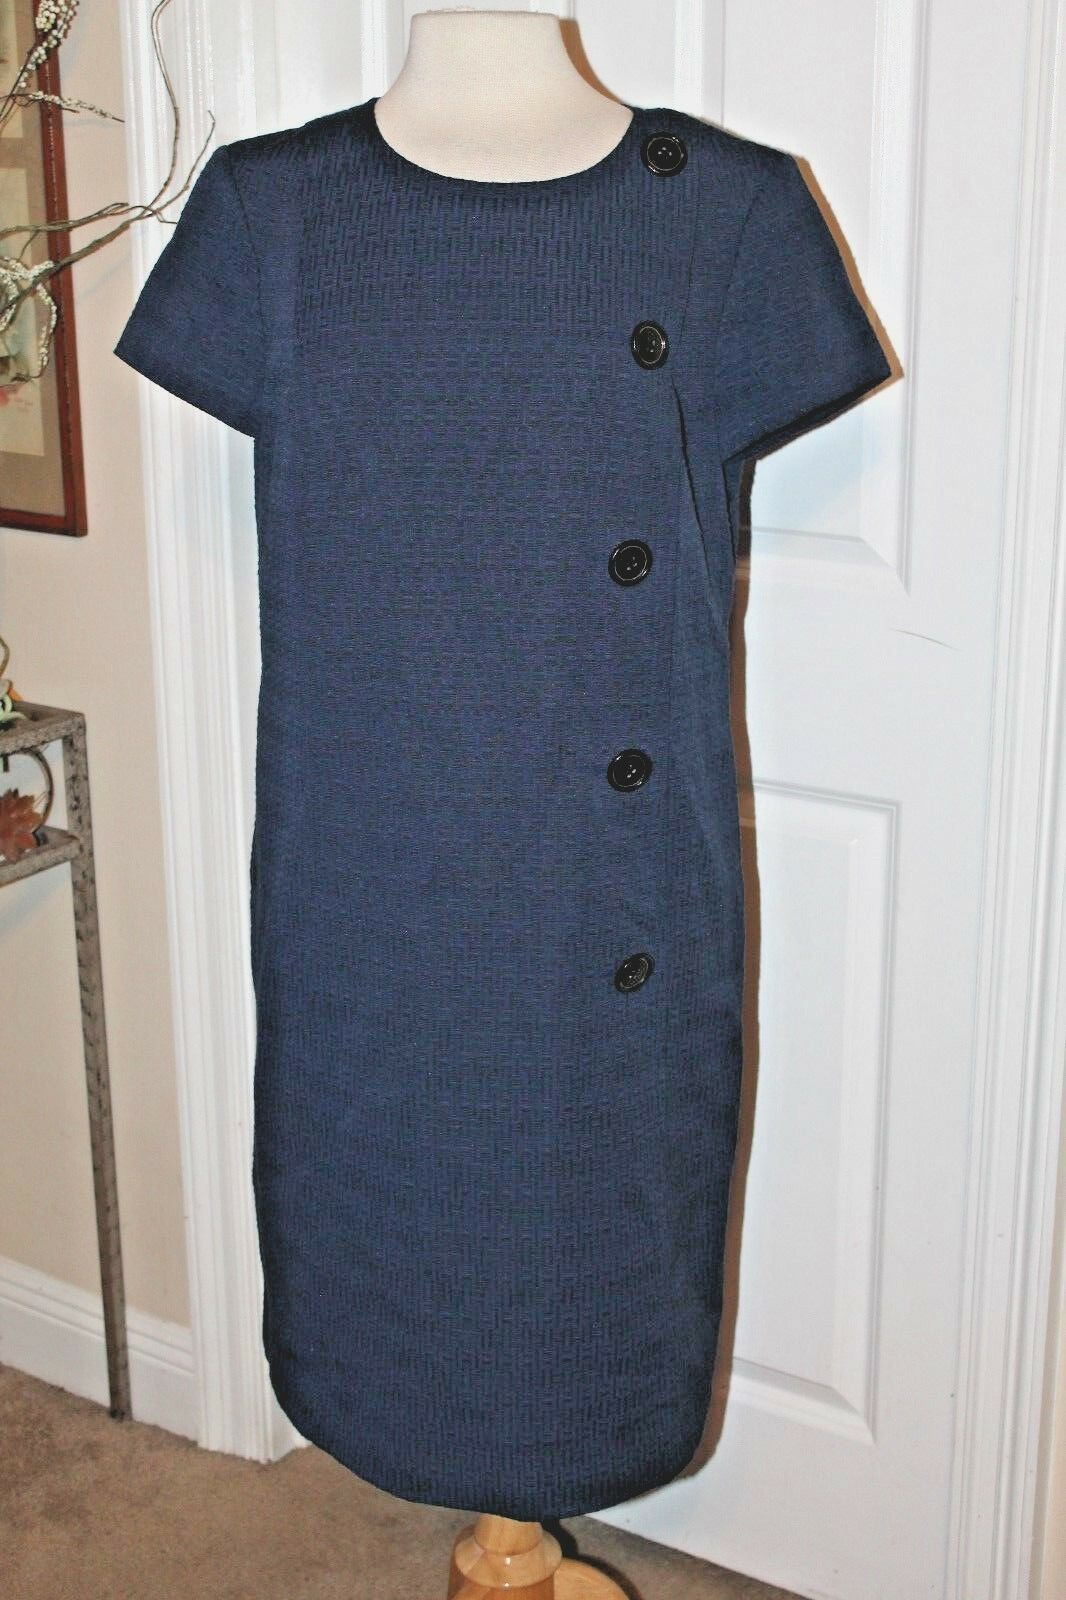 NEW NWT ANN TAYLOR blueE TEXTURED DRESS W DECORATIVE BUTTONS ON SIDE, SIZE 16